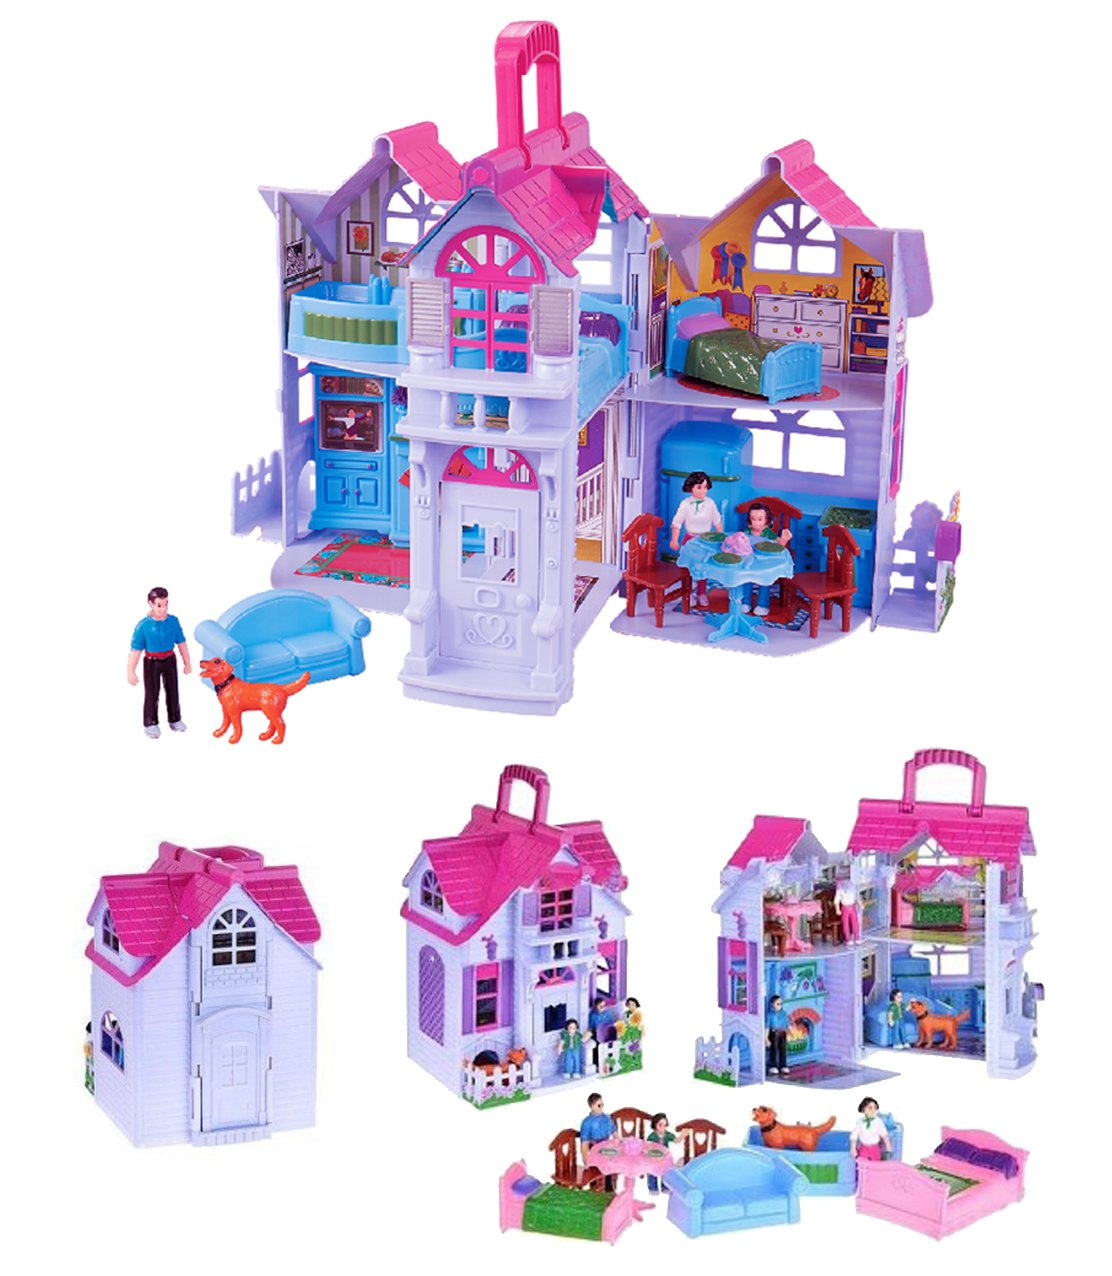 Liberty Imports My Sweet Home Fold And Go Pretend Play Charger Fenglong Mini Dollhouse With Furniture Accessories Toys Games